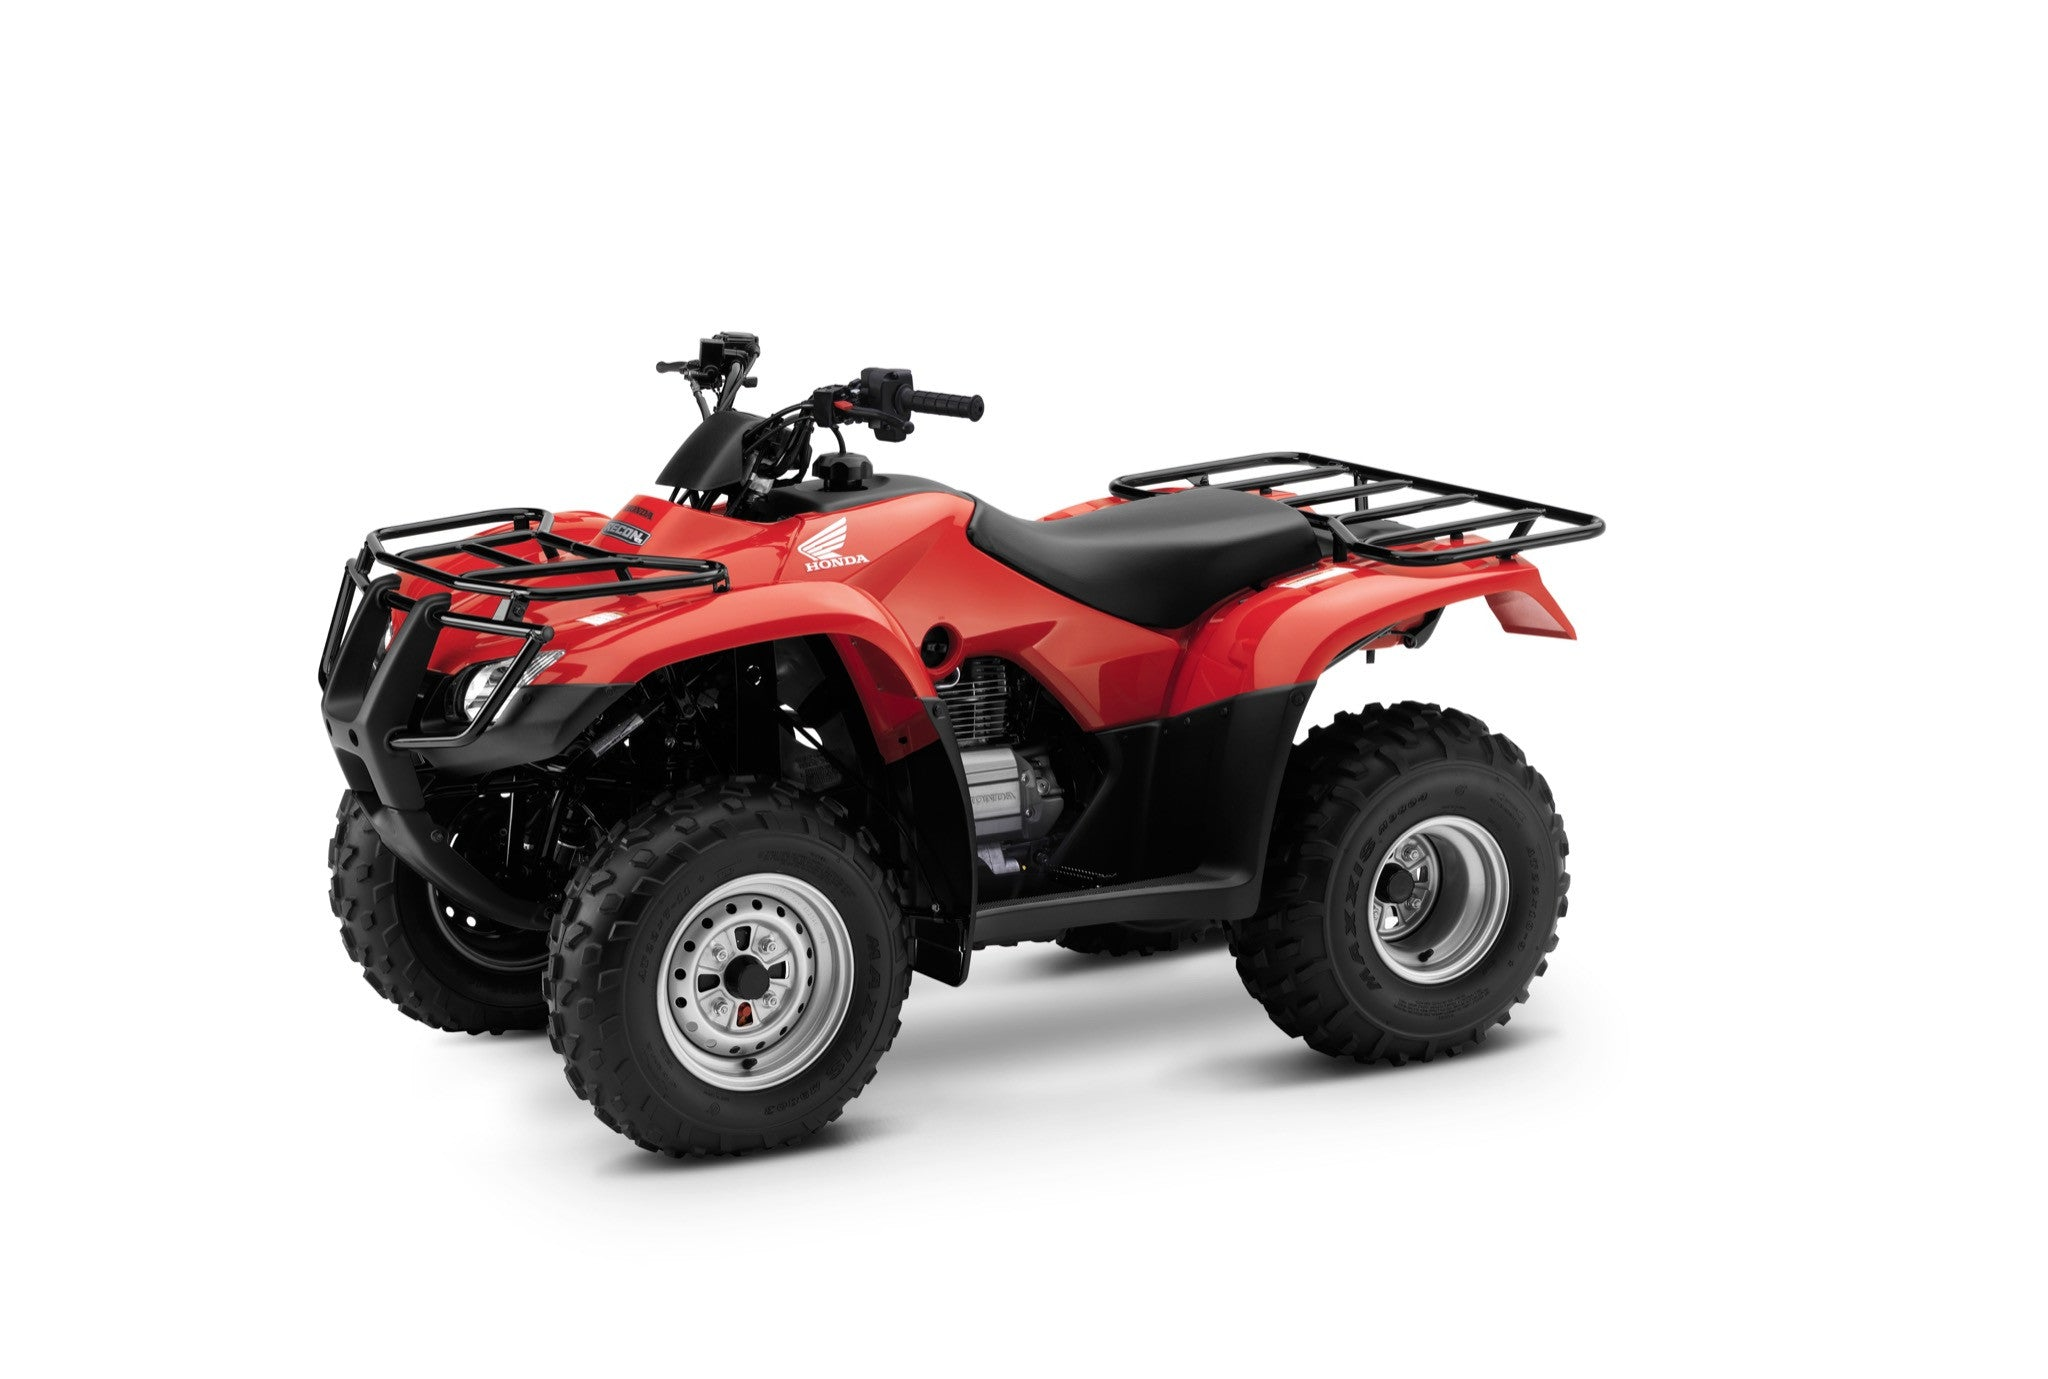 zoom honda fourtrax pn vehicle ex all terrain product makes filter recon trx city atv air